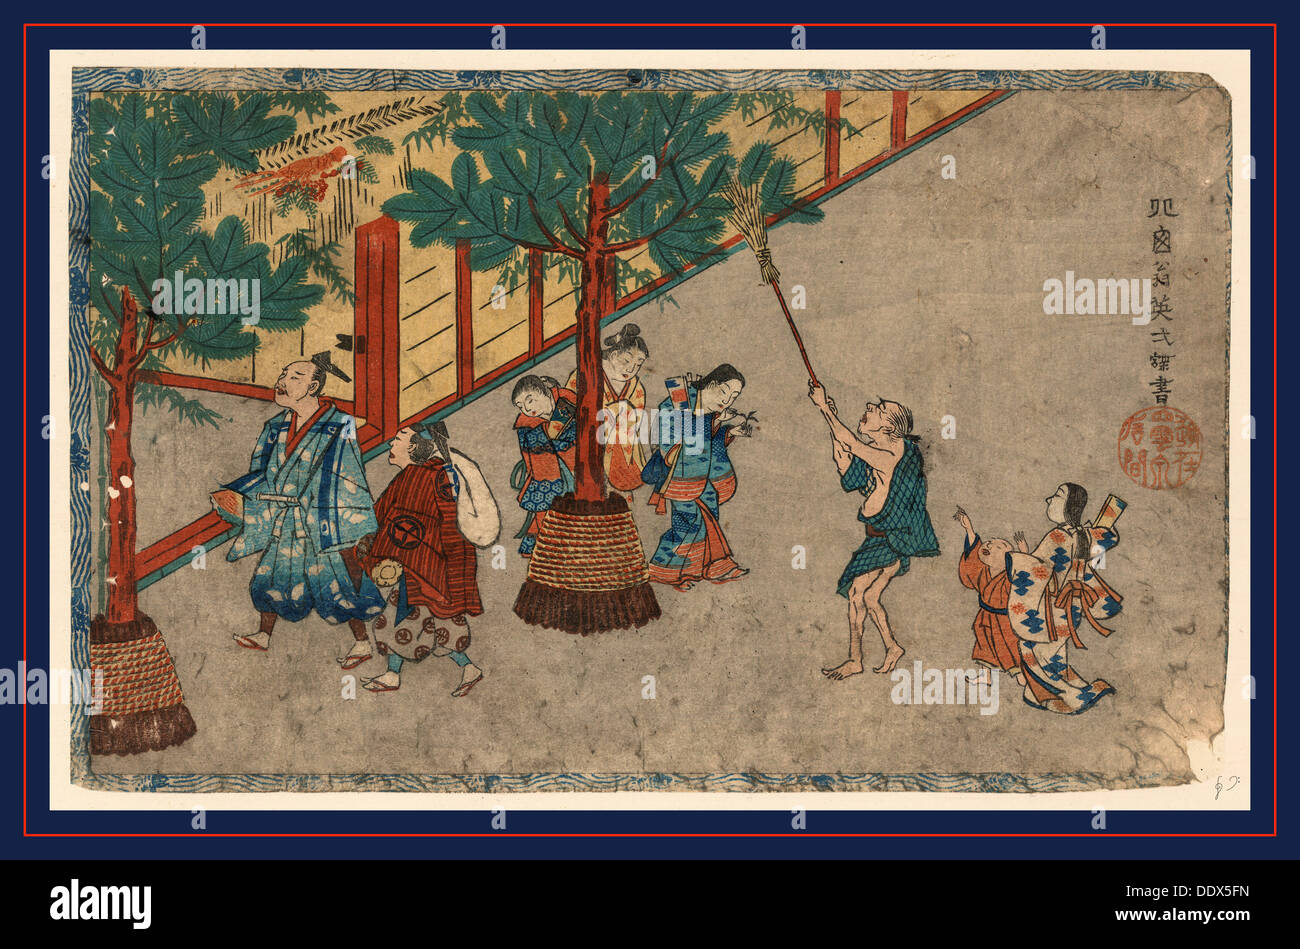 Mutsuki, January. [between 1830 and 1844], 1 print : woodcut, color ; 21.9 x 35 cm., Print shows several people outside the - Stock Image